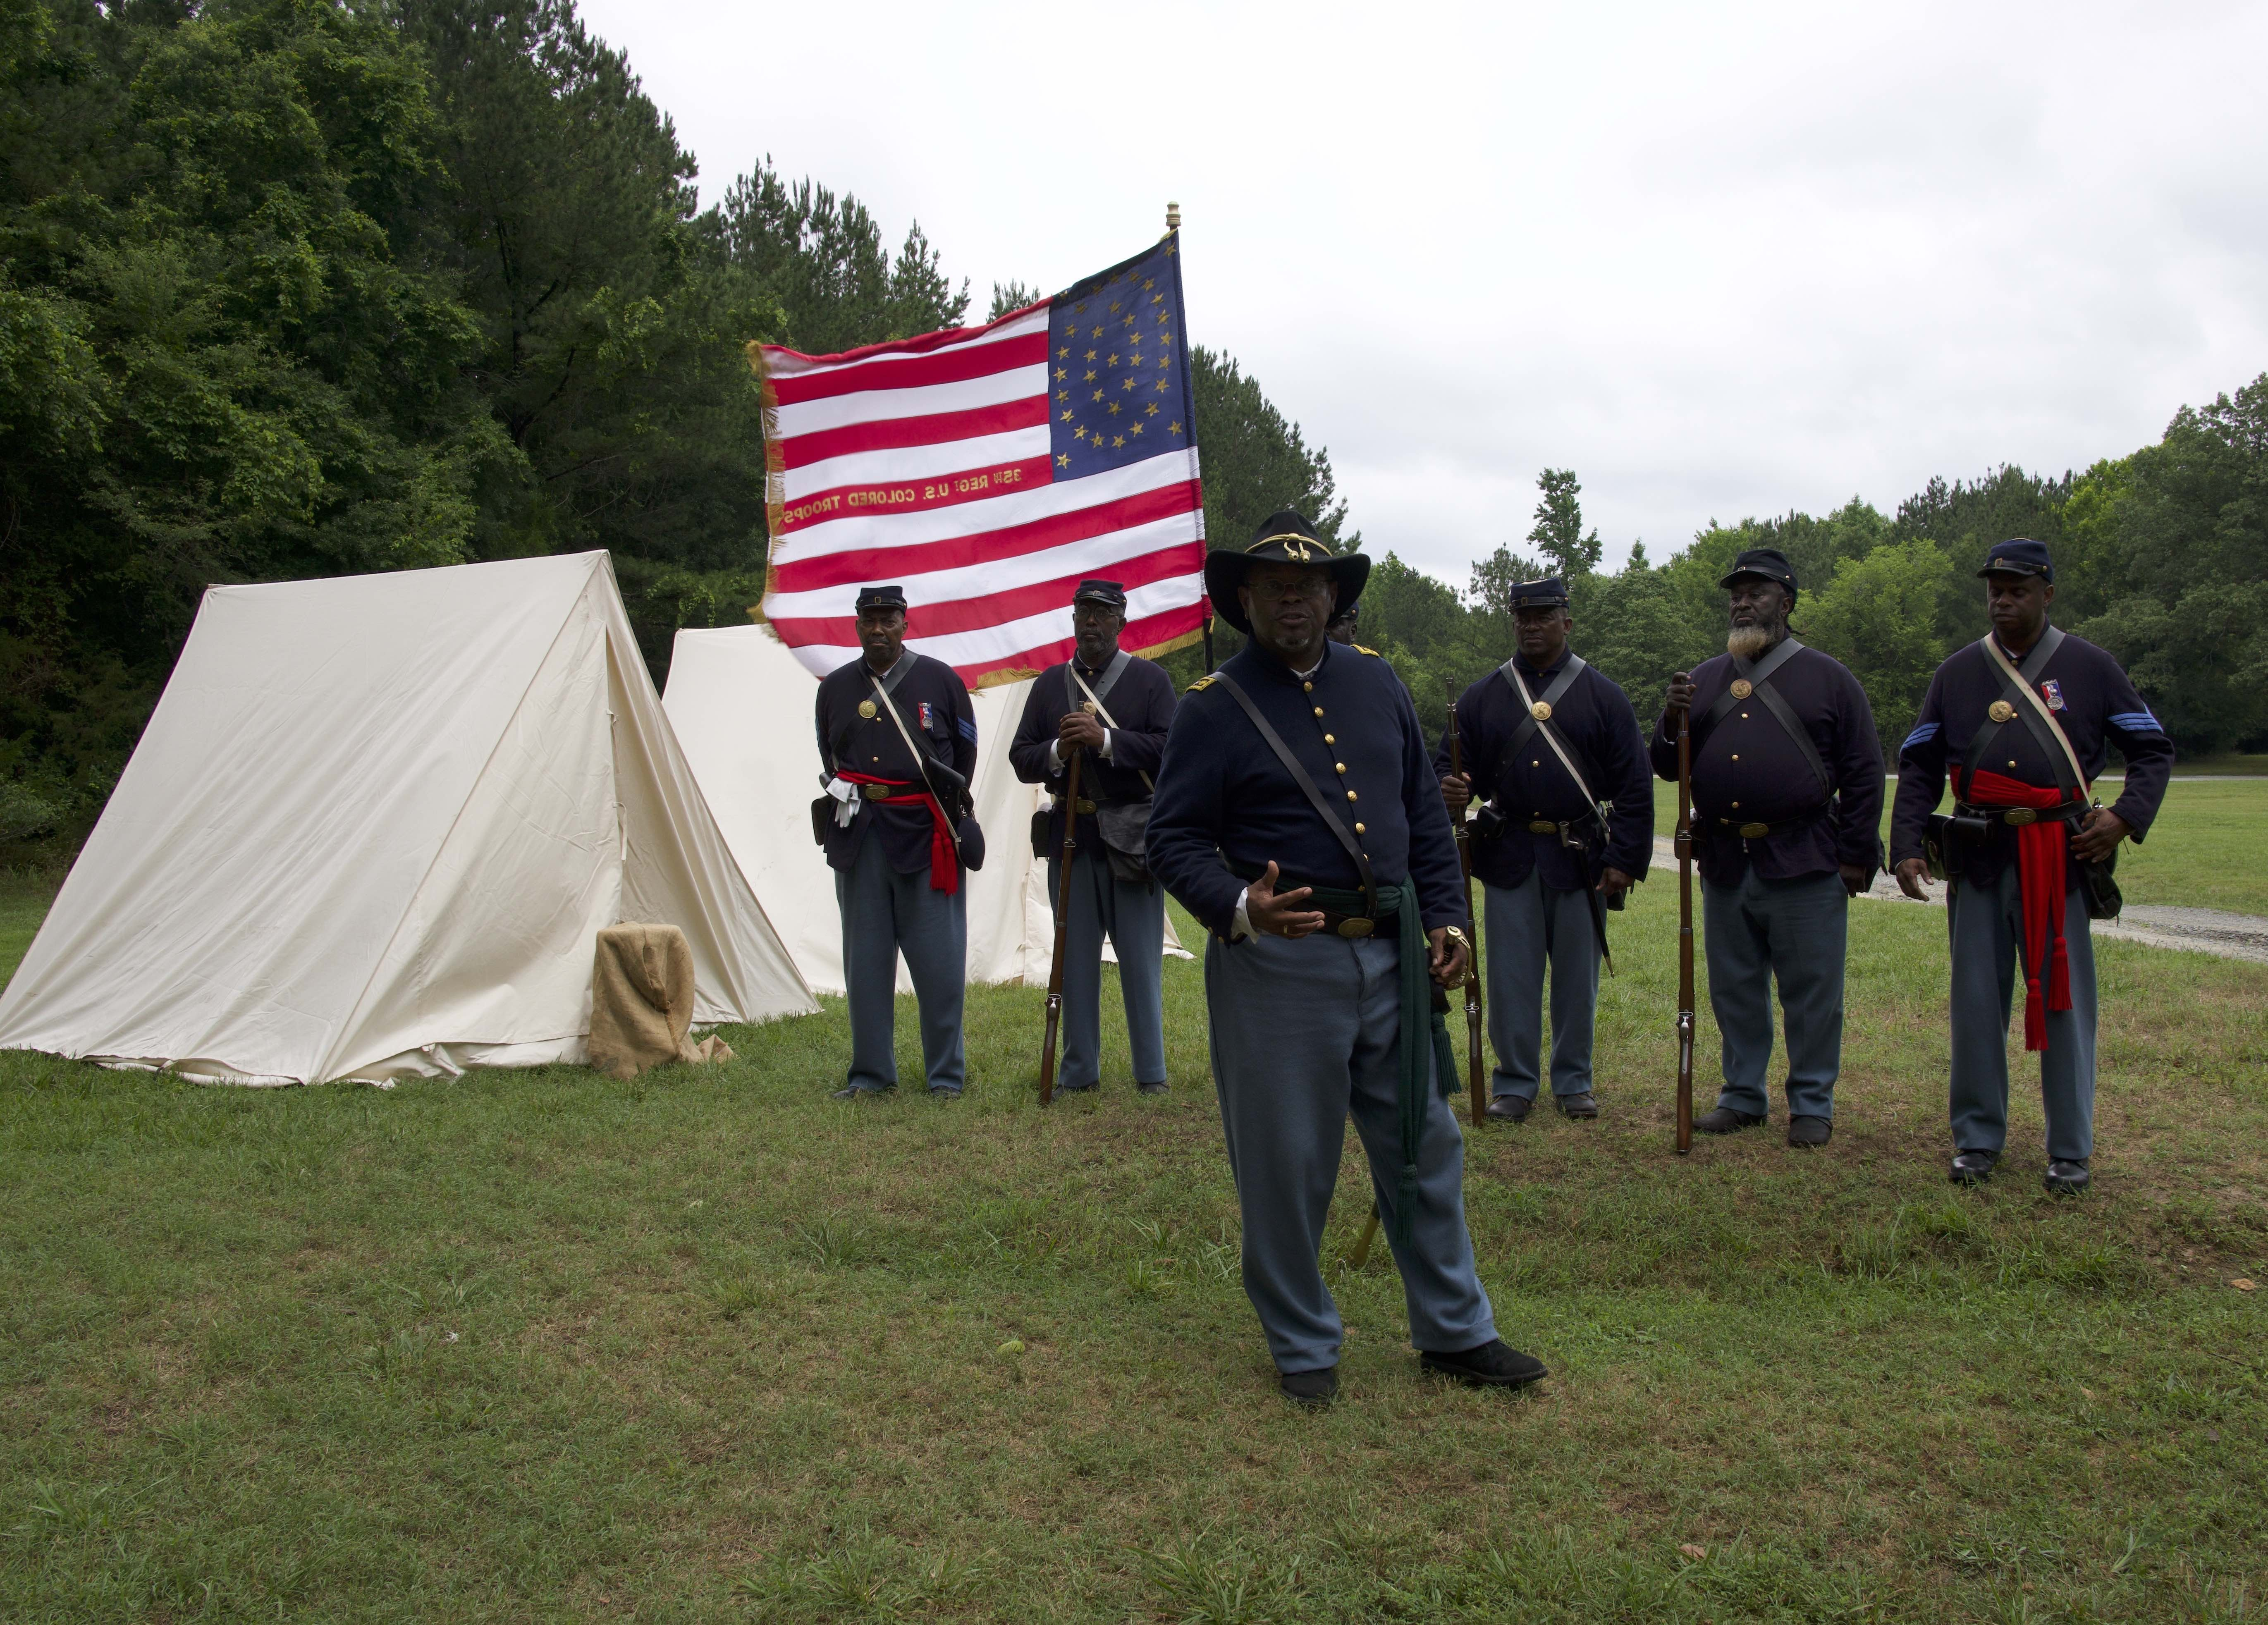 Juneteenth Commemoration: Reenactors demonstrating life for the 35th Regiment U.S. Colored Troops